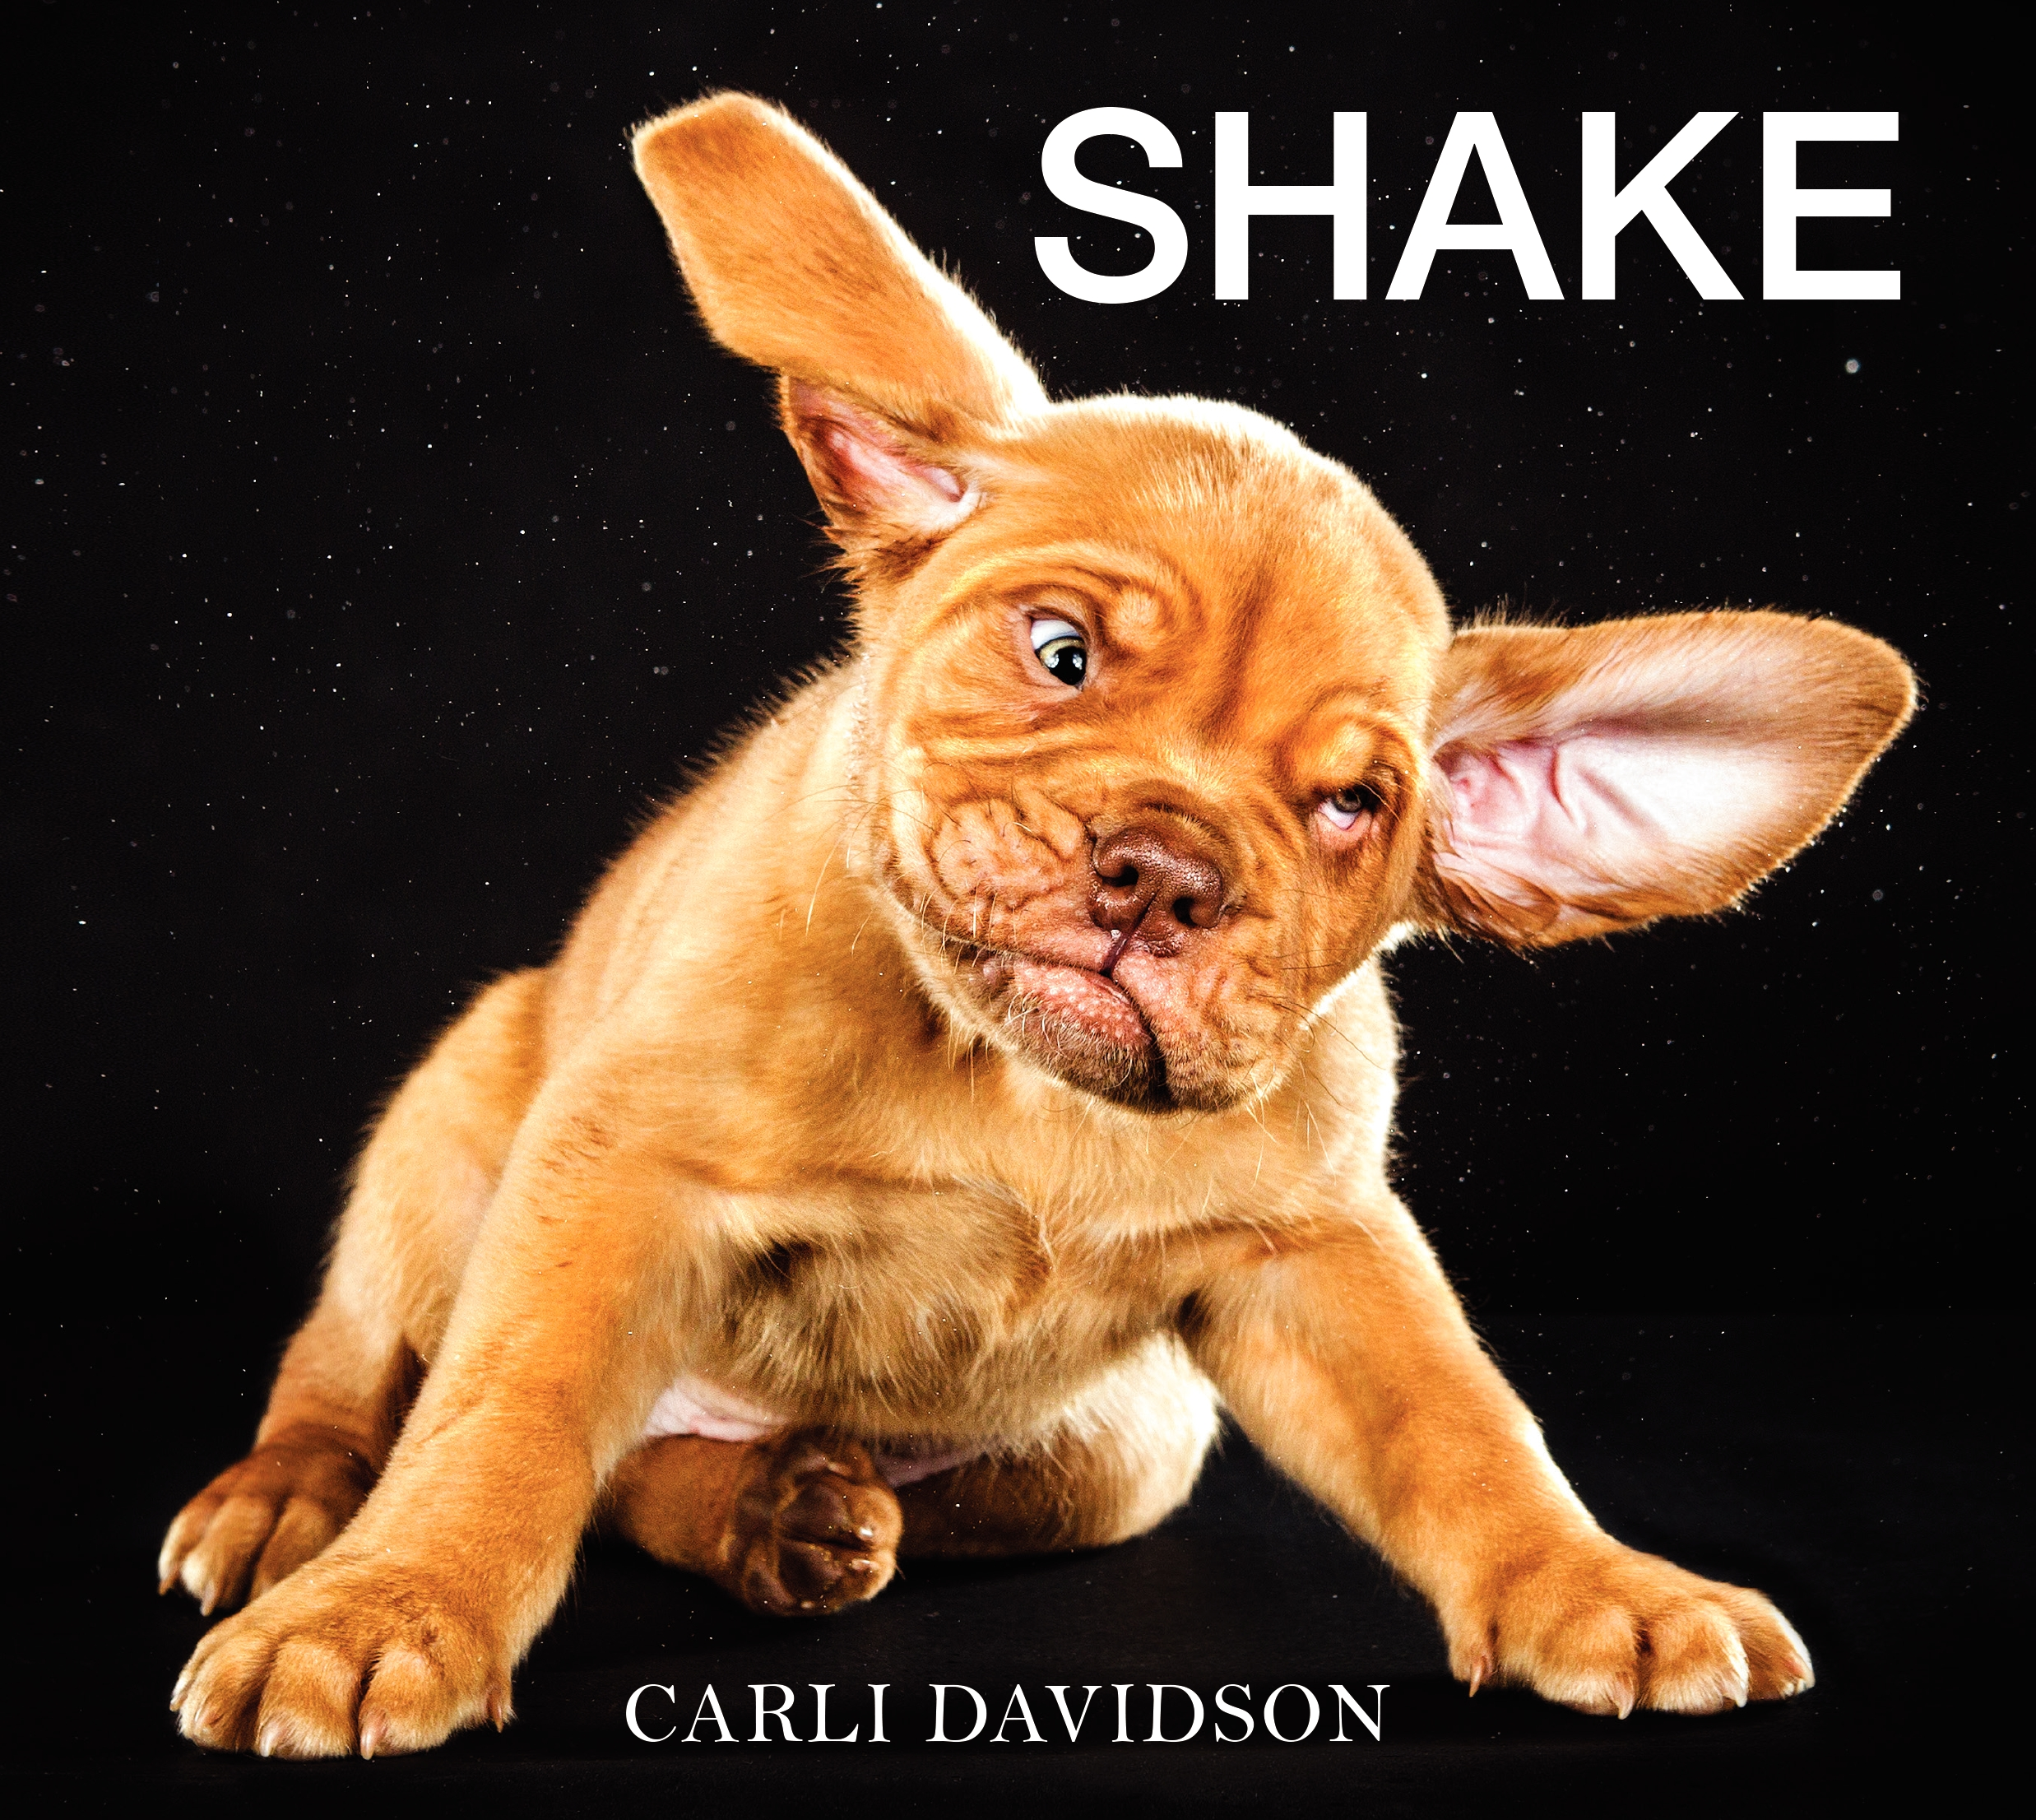 Book Launch: Shake by Carli Davidson